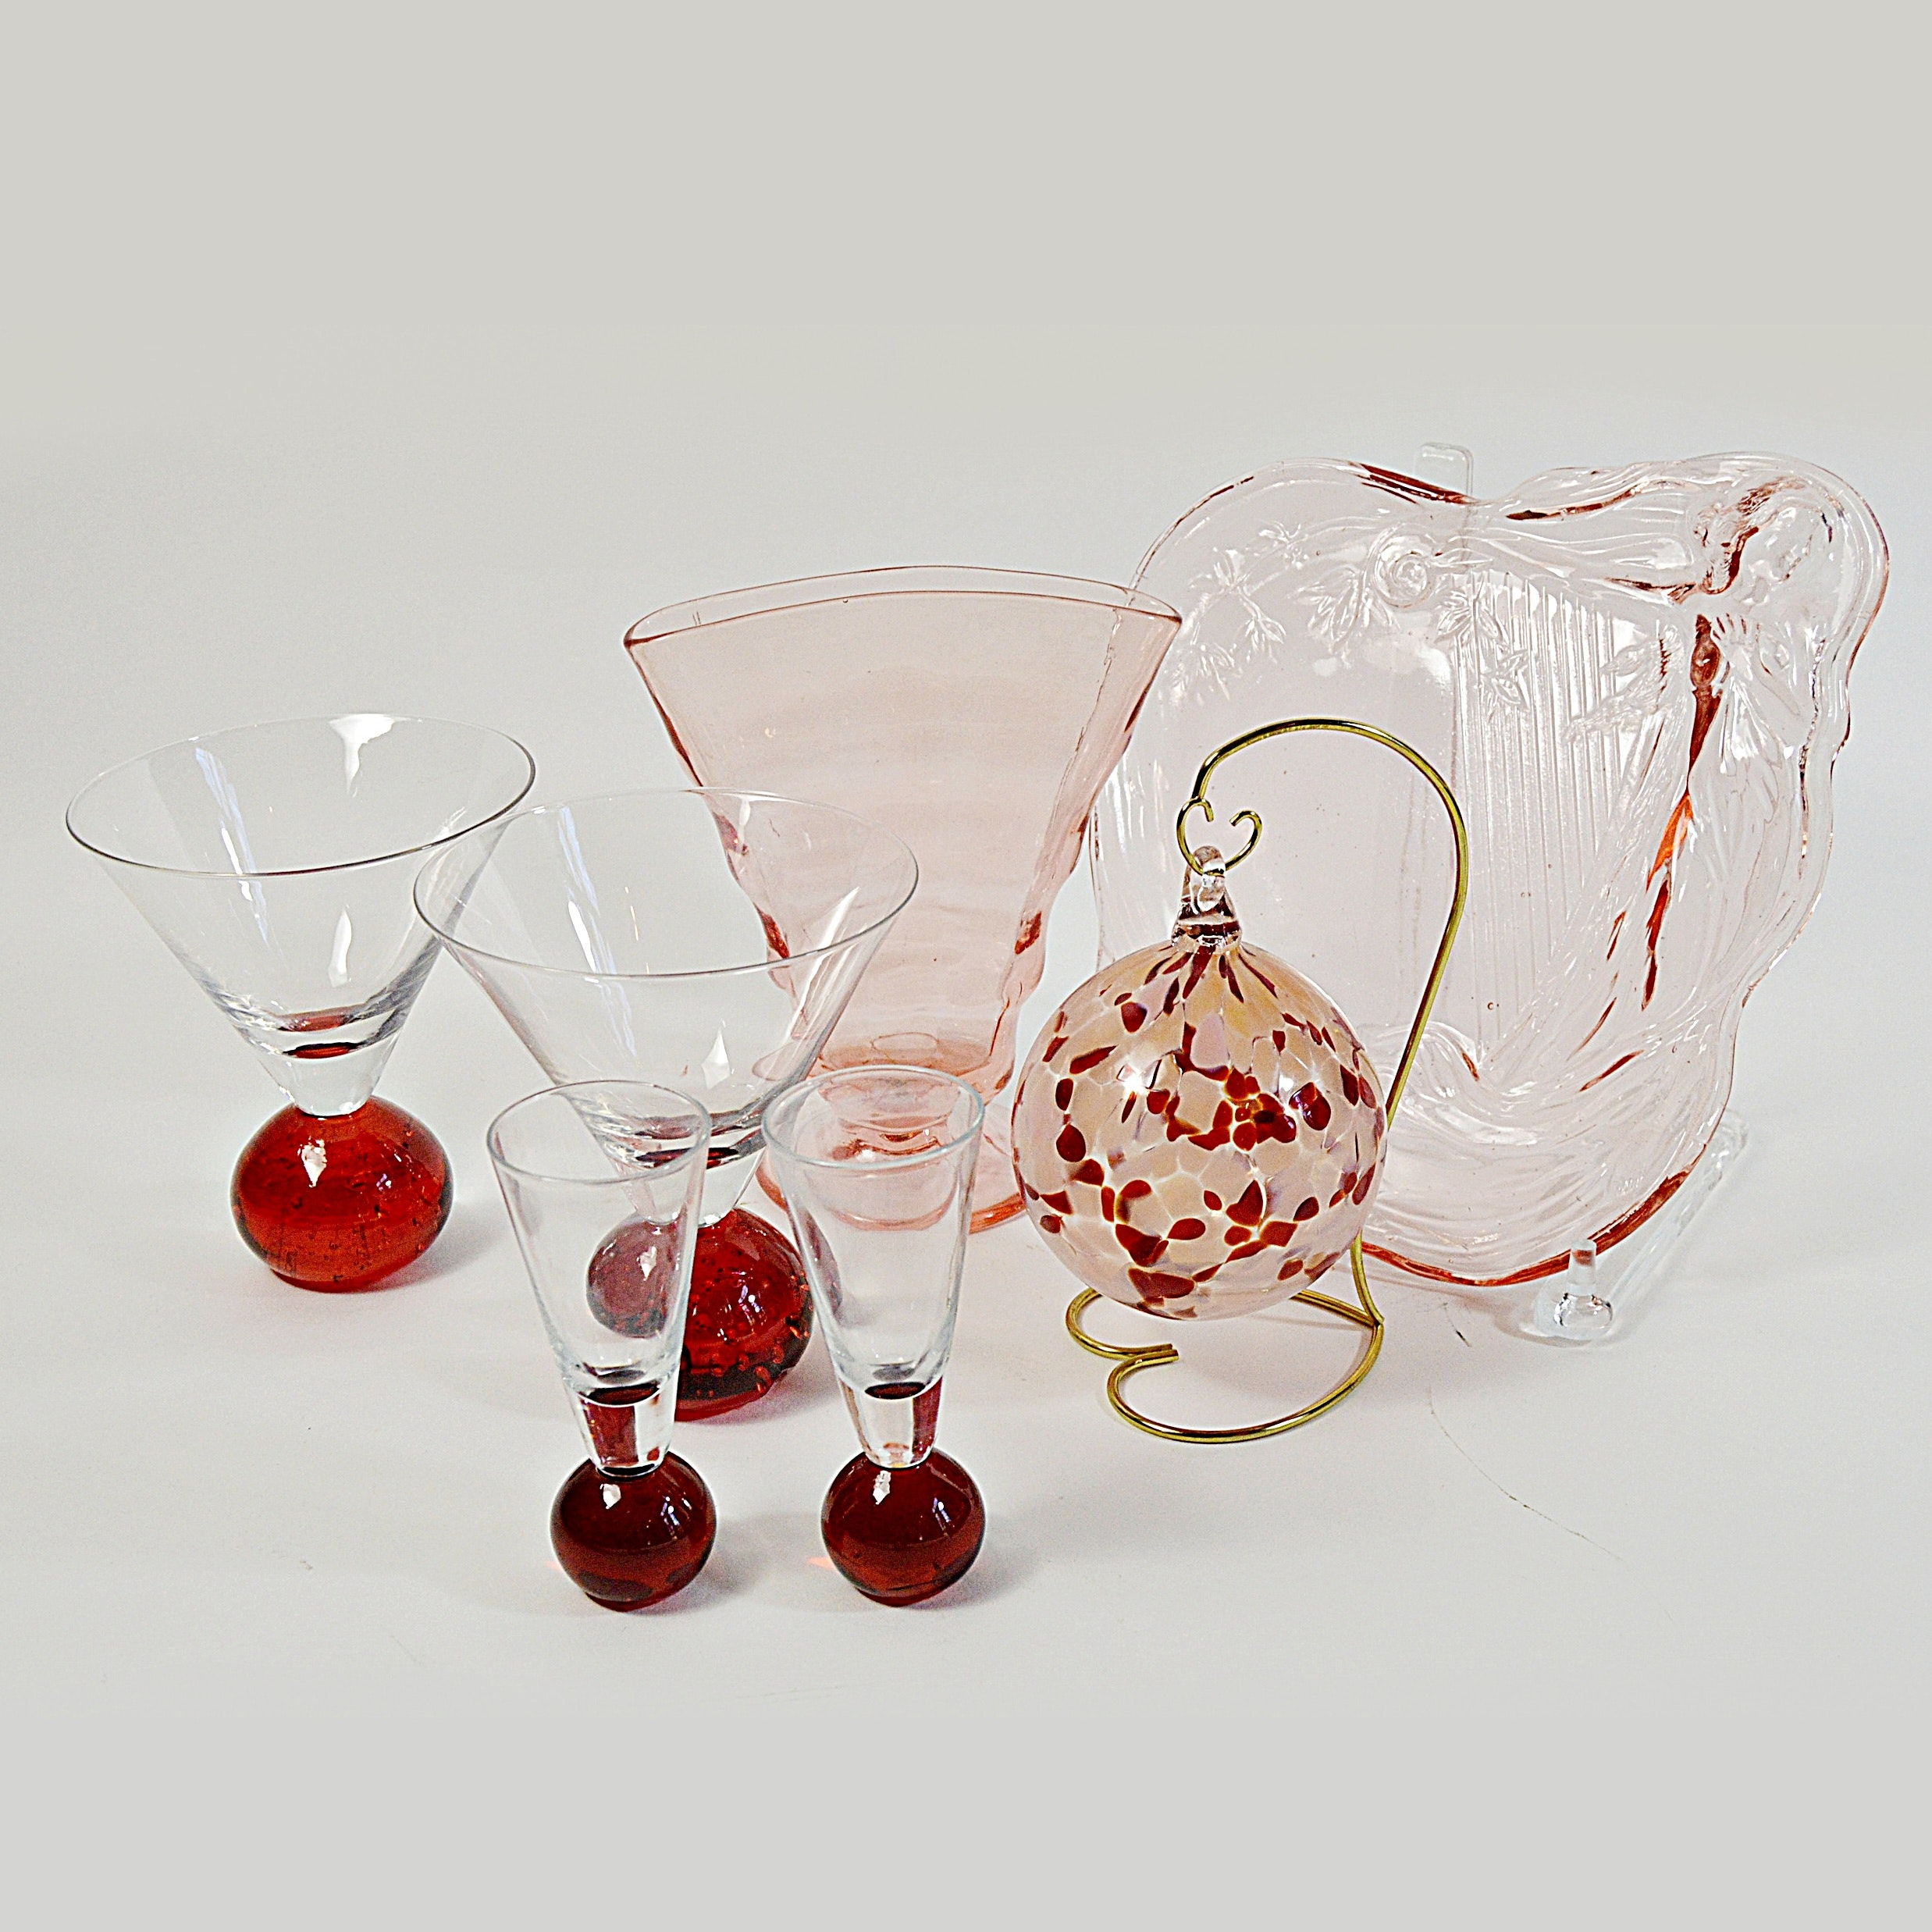 Pink and Red Glassware with Handblown Ornament